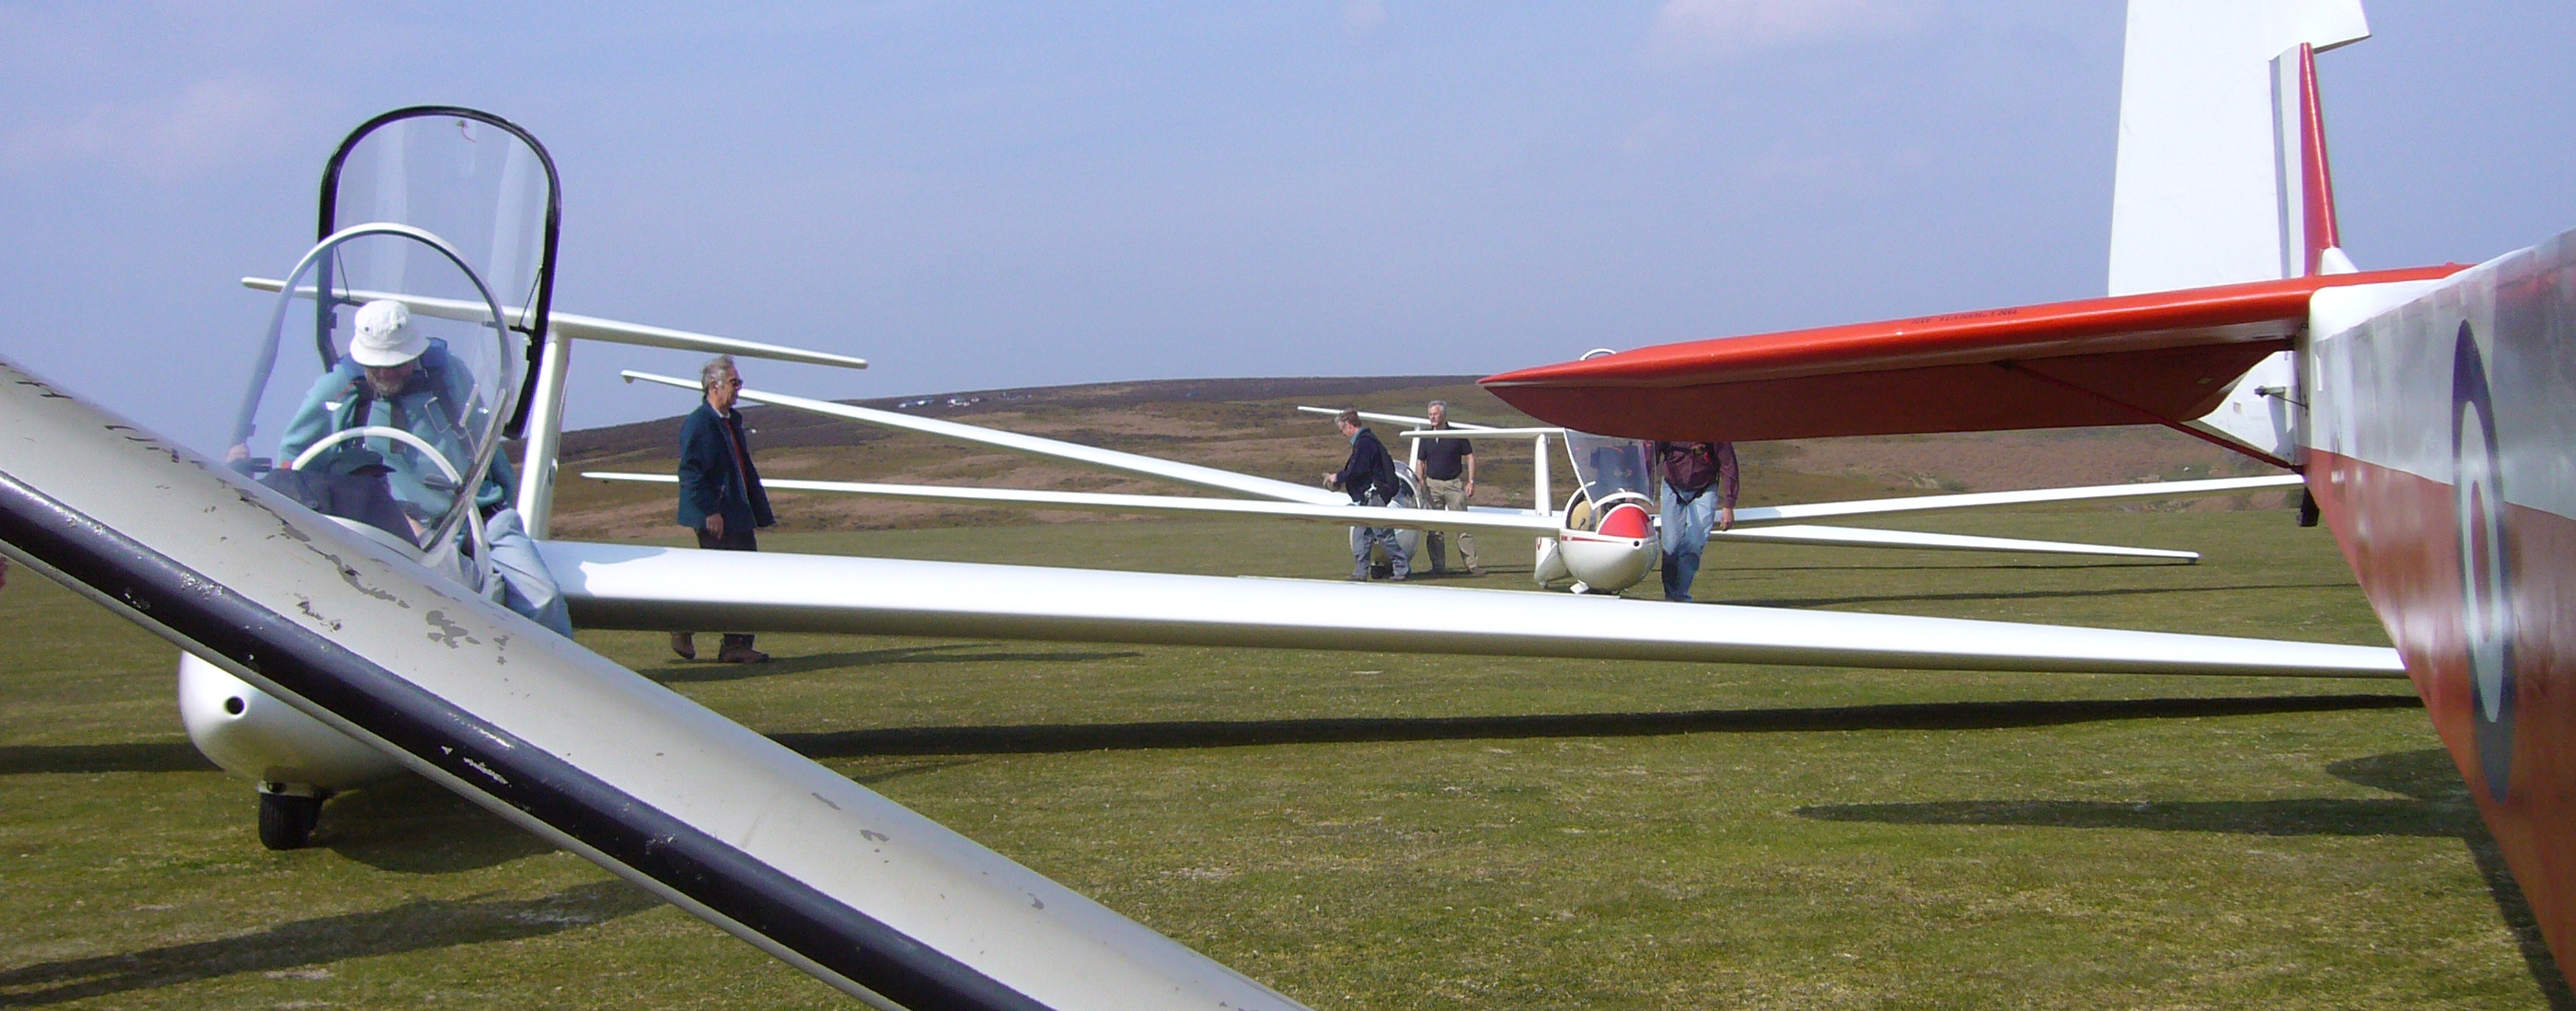 Holiday courses at Midland Gliding Club